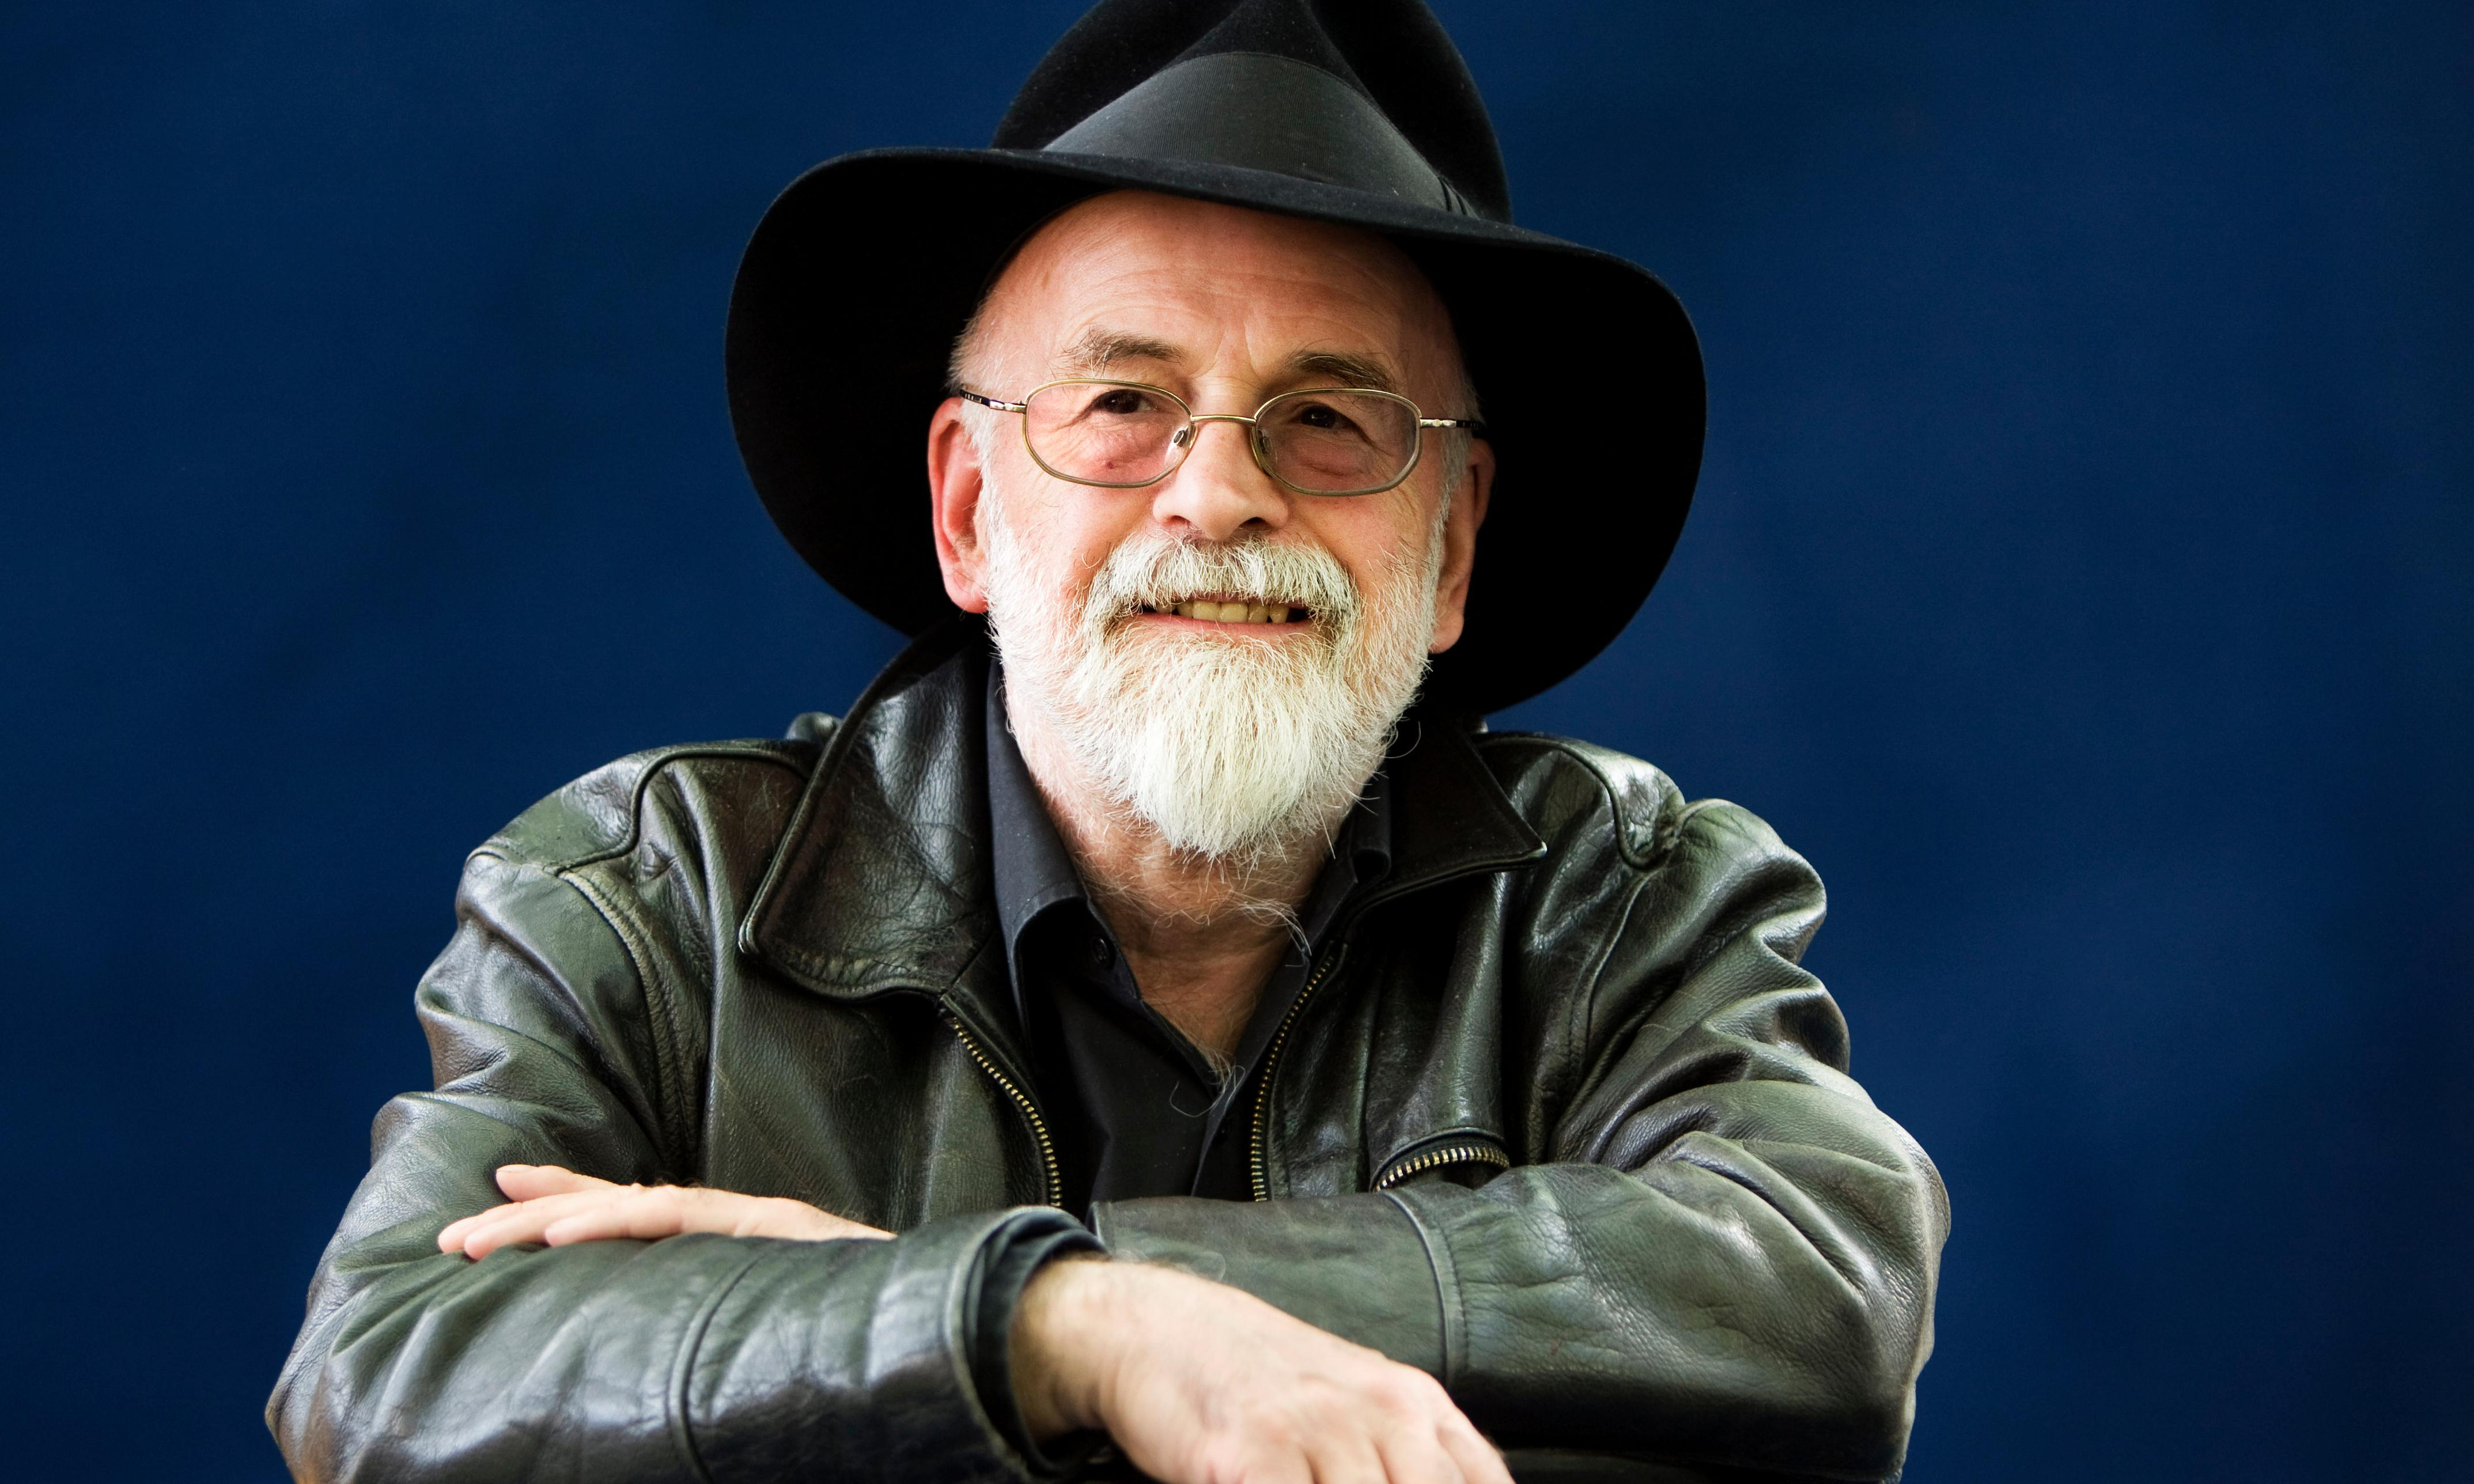 Terry Pratchett predicted rise of fake news in 1995, says biographer